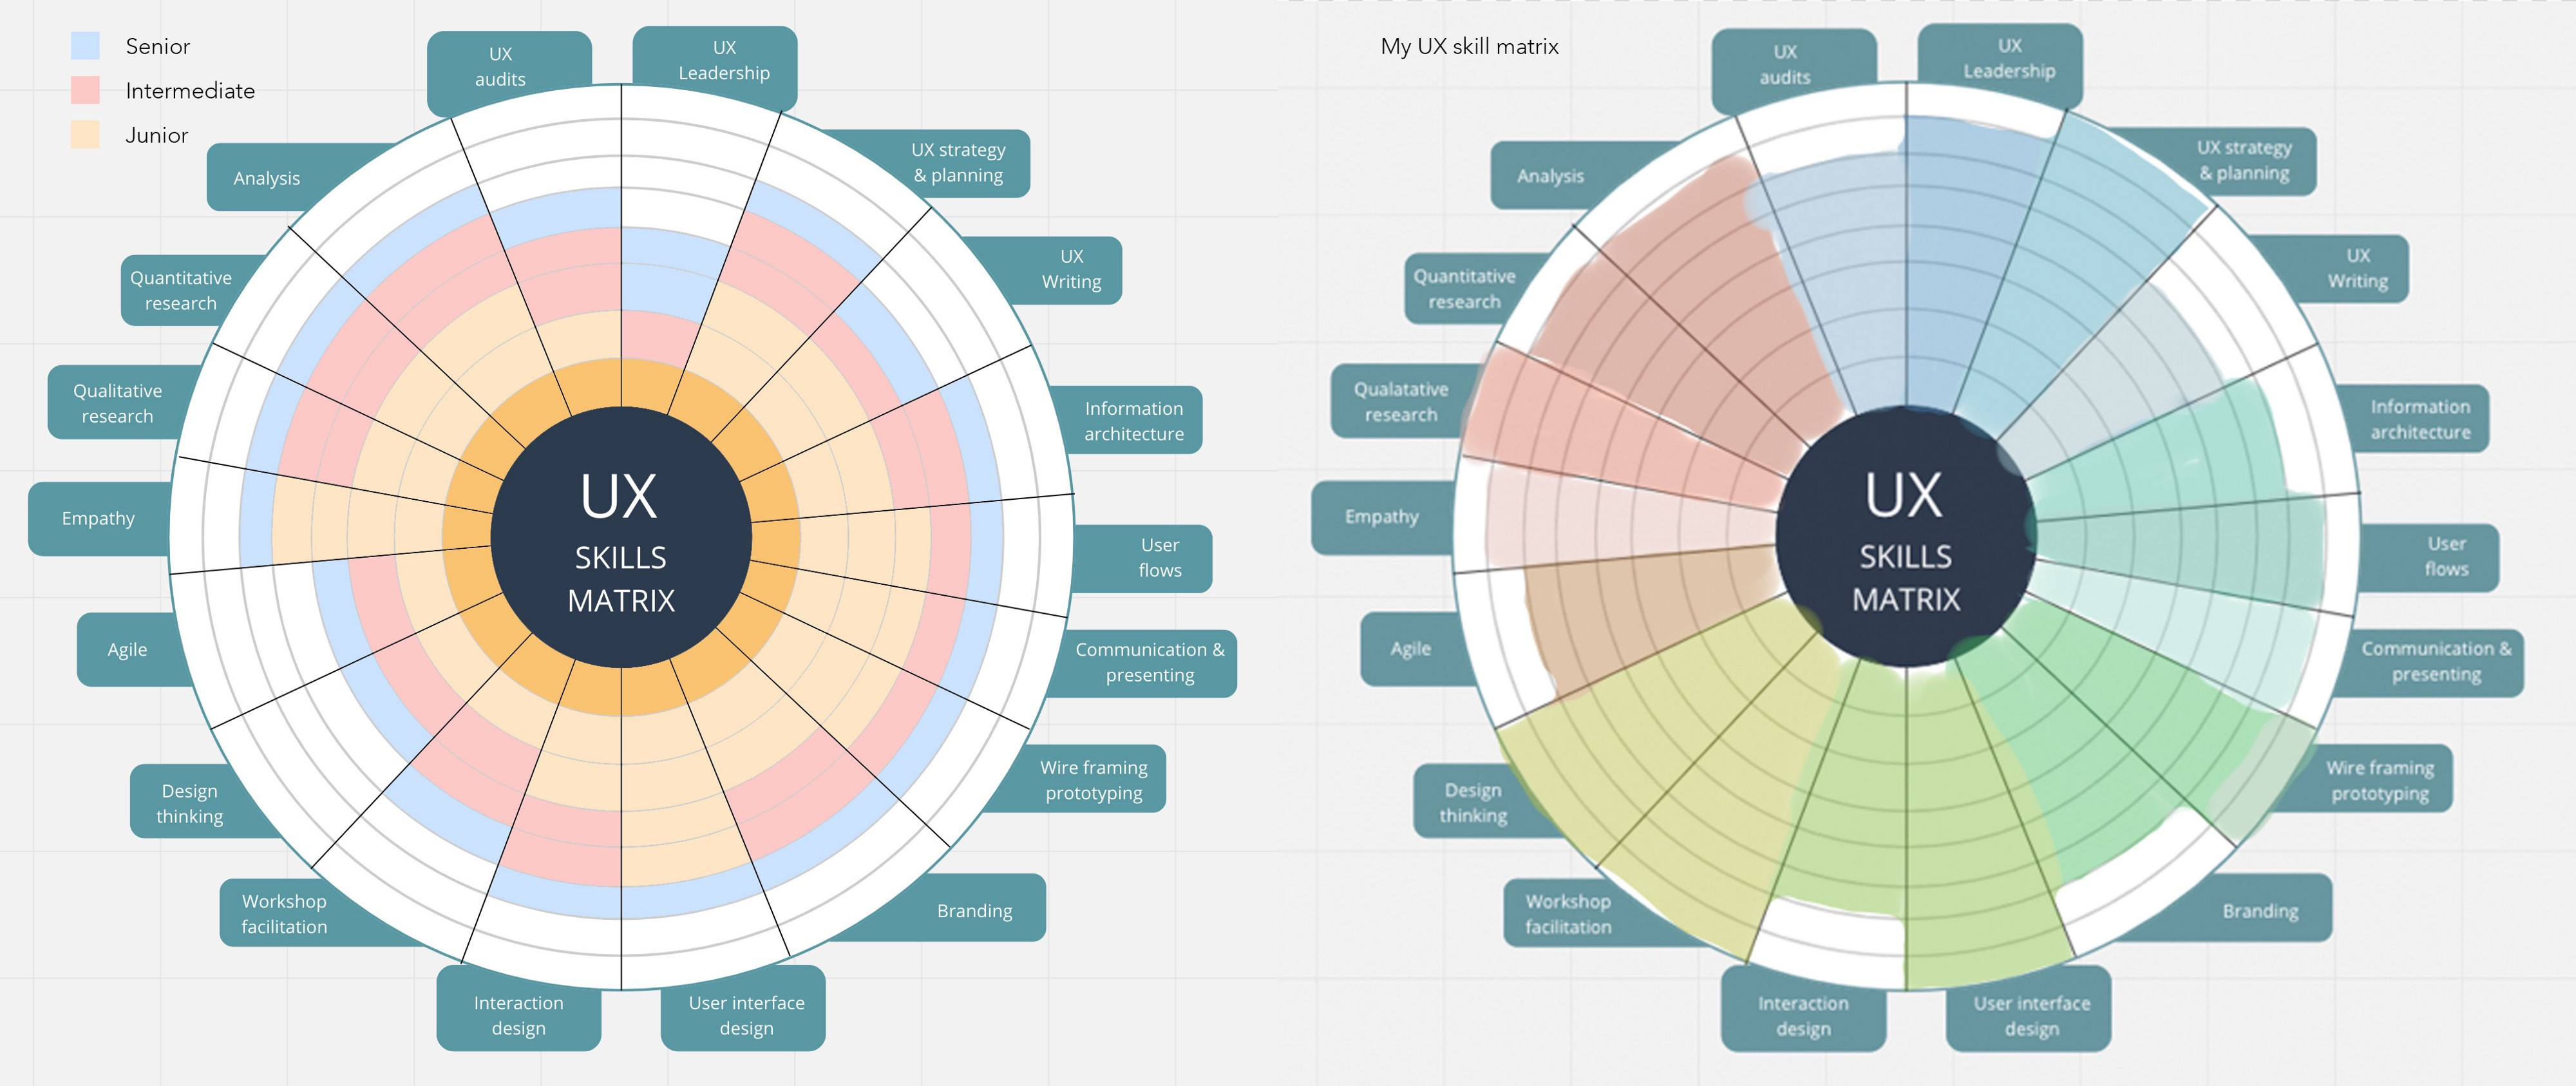 A Matrix To Help You Self Evaluate On 18 Different Skills A Ux Designer Needs By Daniel Birch Ux Collective